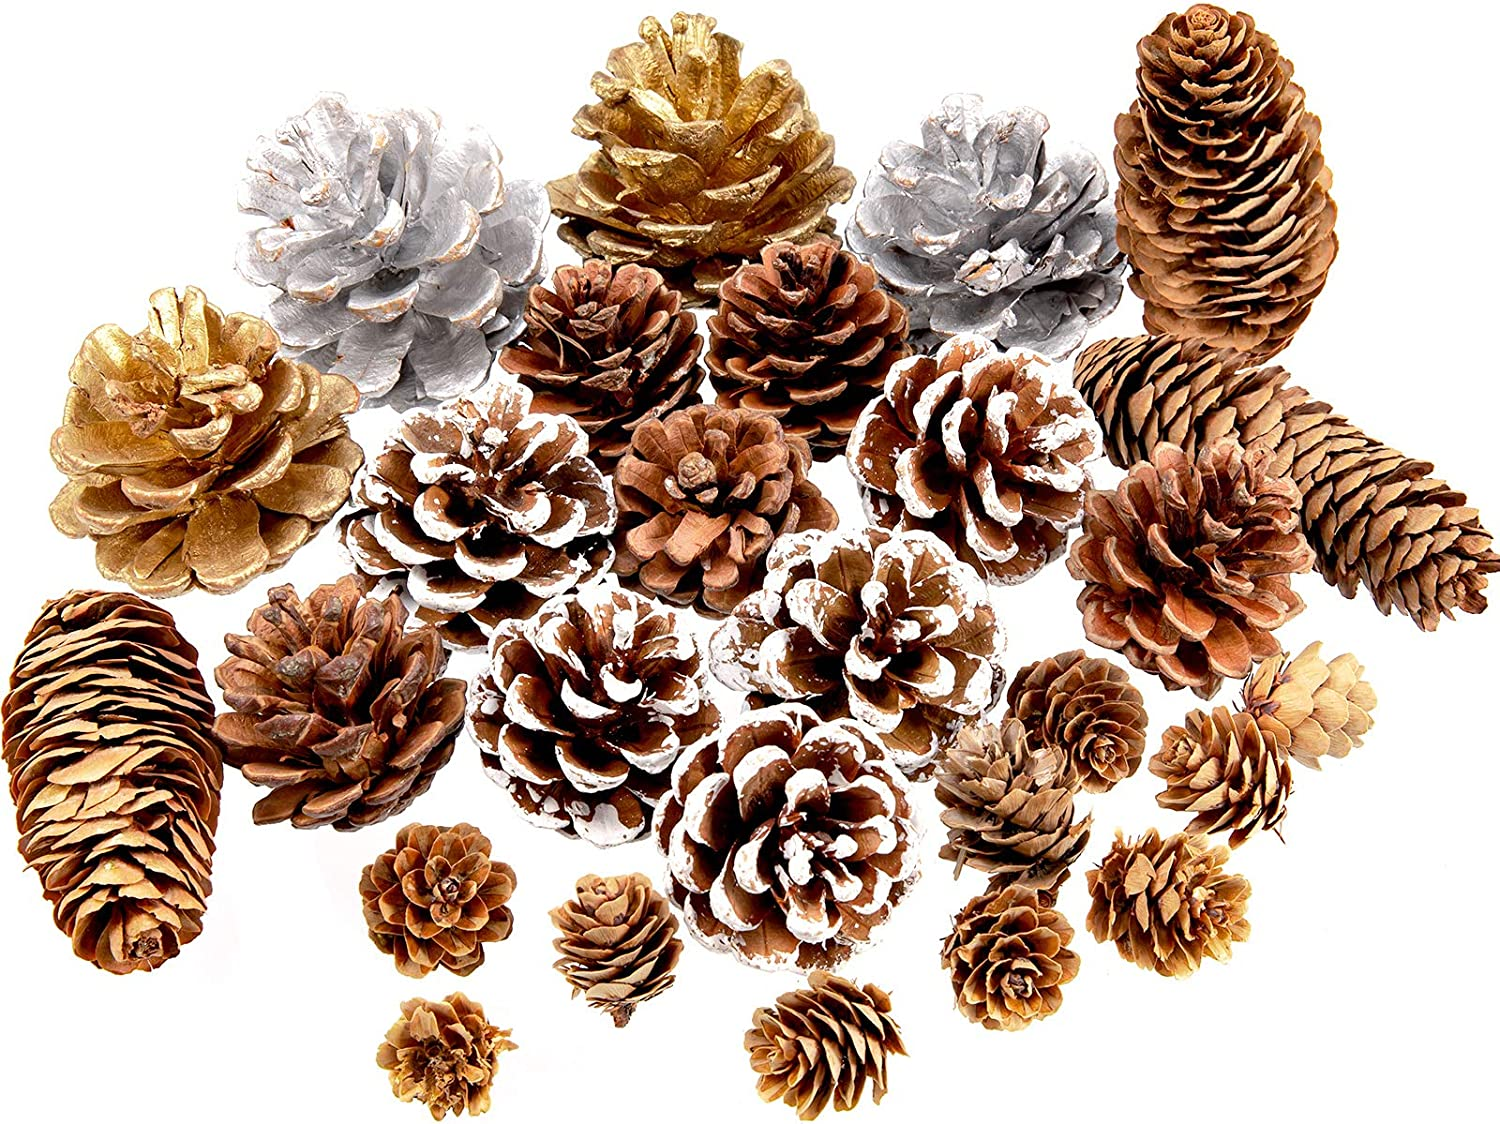 Whaline 27Pcs Christmas Pine Cones Natural Pinecones Silver Gold Snow Pin Cones Spruce Pine Cones for Crafts Gift Holiday Home Party Decoration, 6 Styles, Assorted Sizes